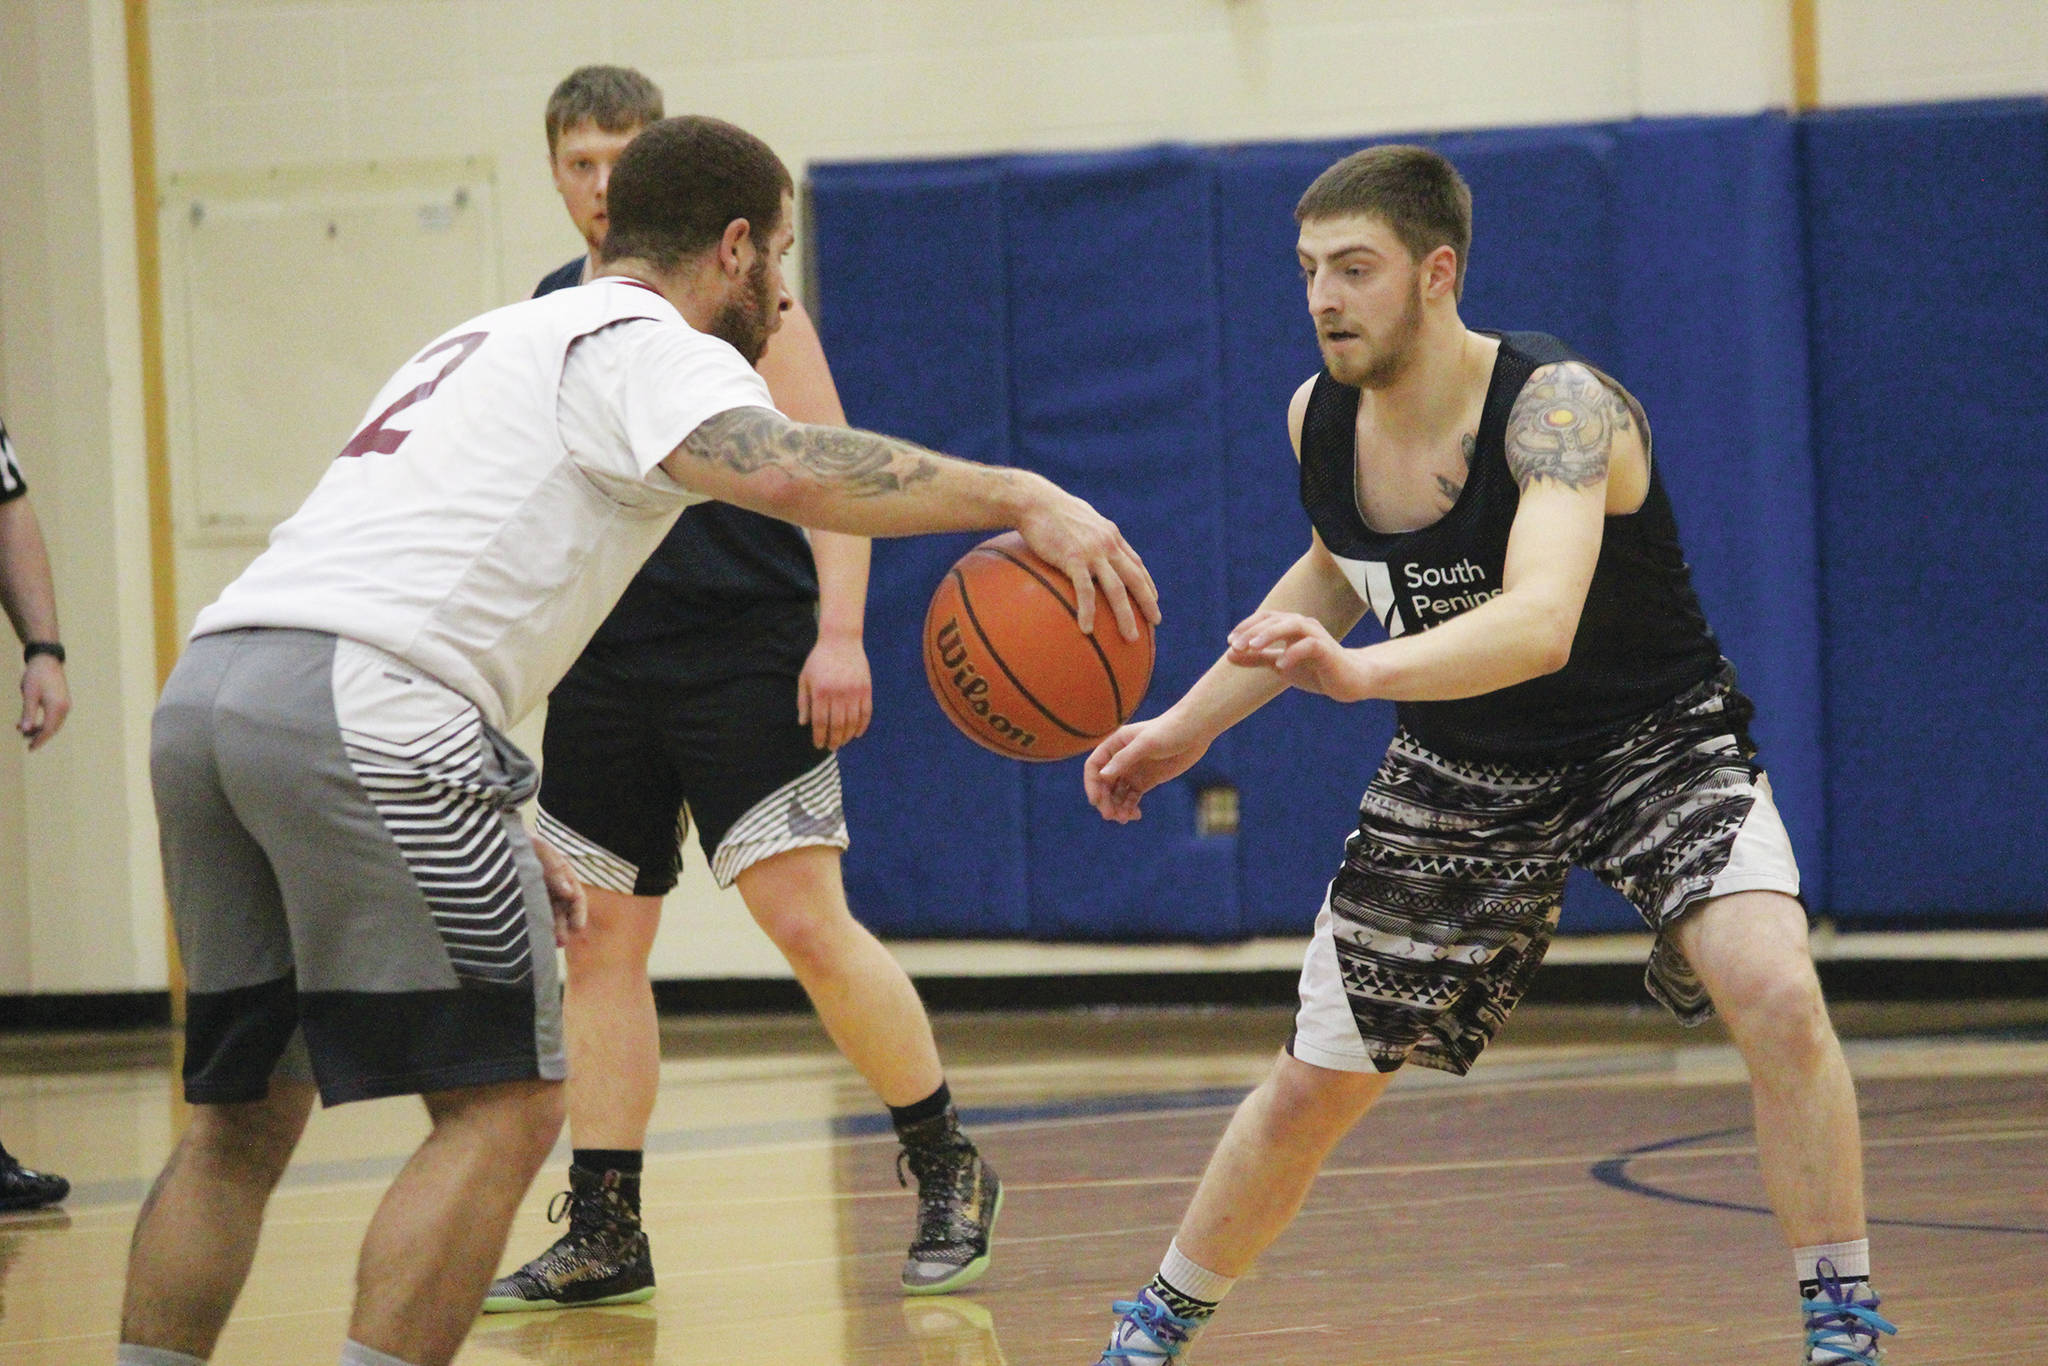 Matt Bartolowitz guards Jay Harris during the championship game of the Homer Community Recreation Department's Adult Basketball League Playoffs on Monday, Feb. 17, 2020 at Homer High School in Homer, Alaska. (Photo by Megan Pacer/Homer News)